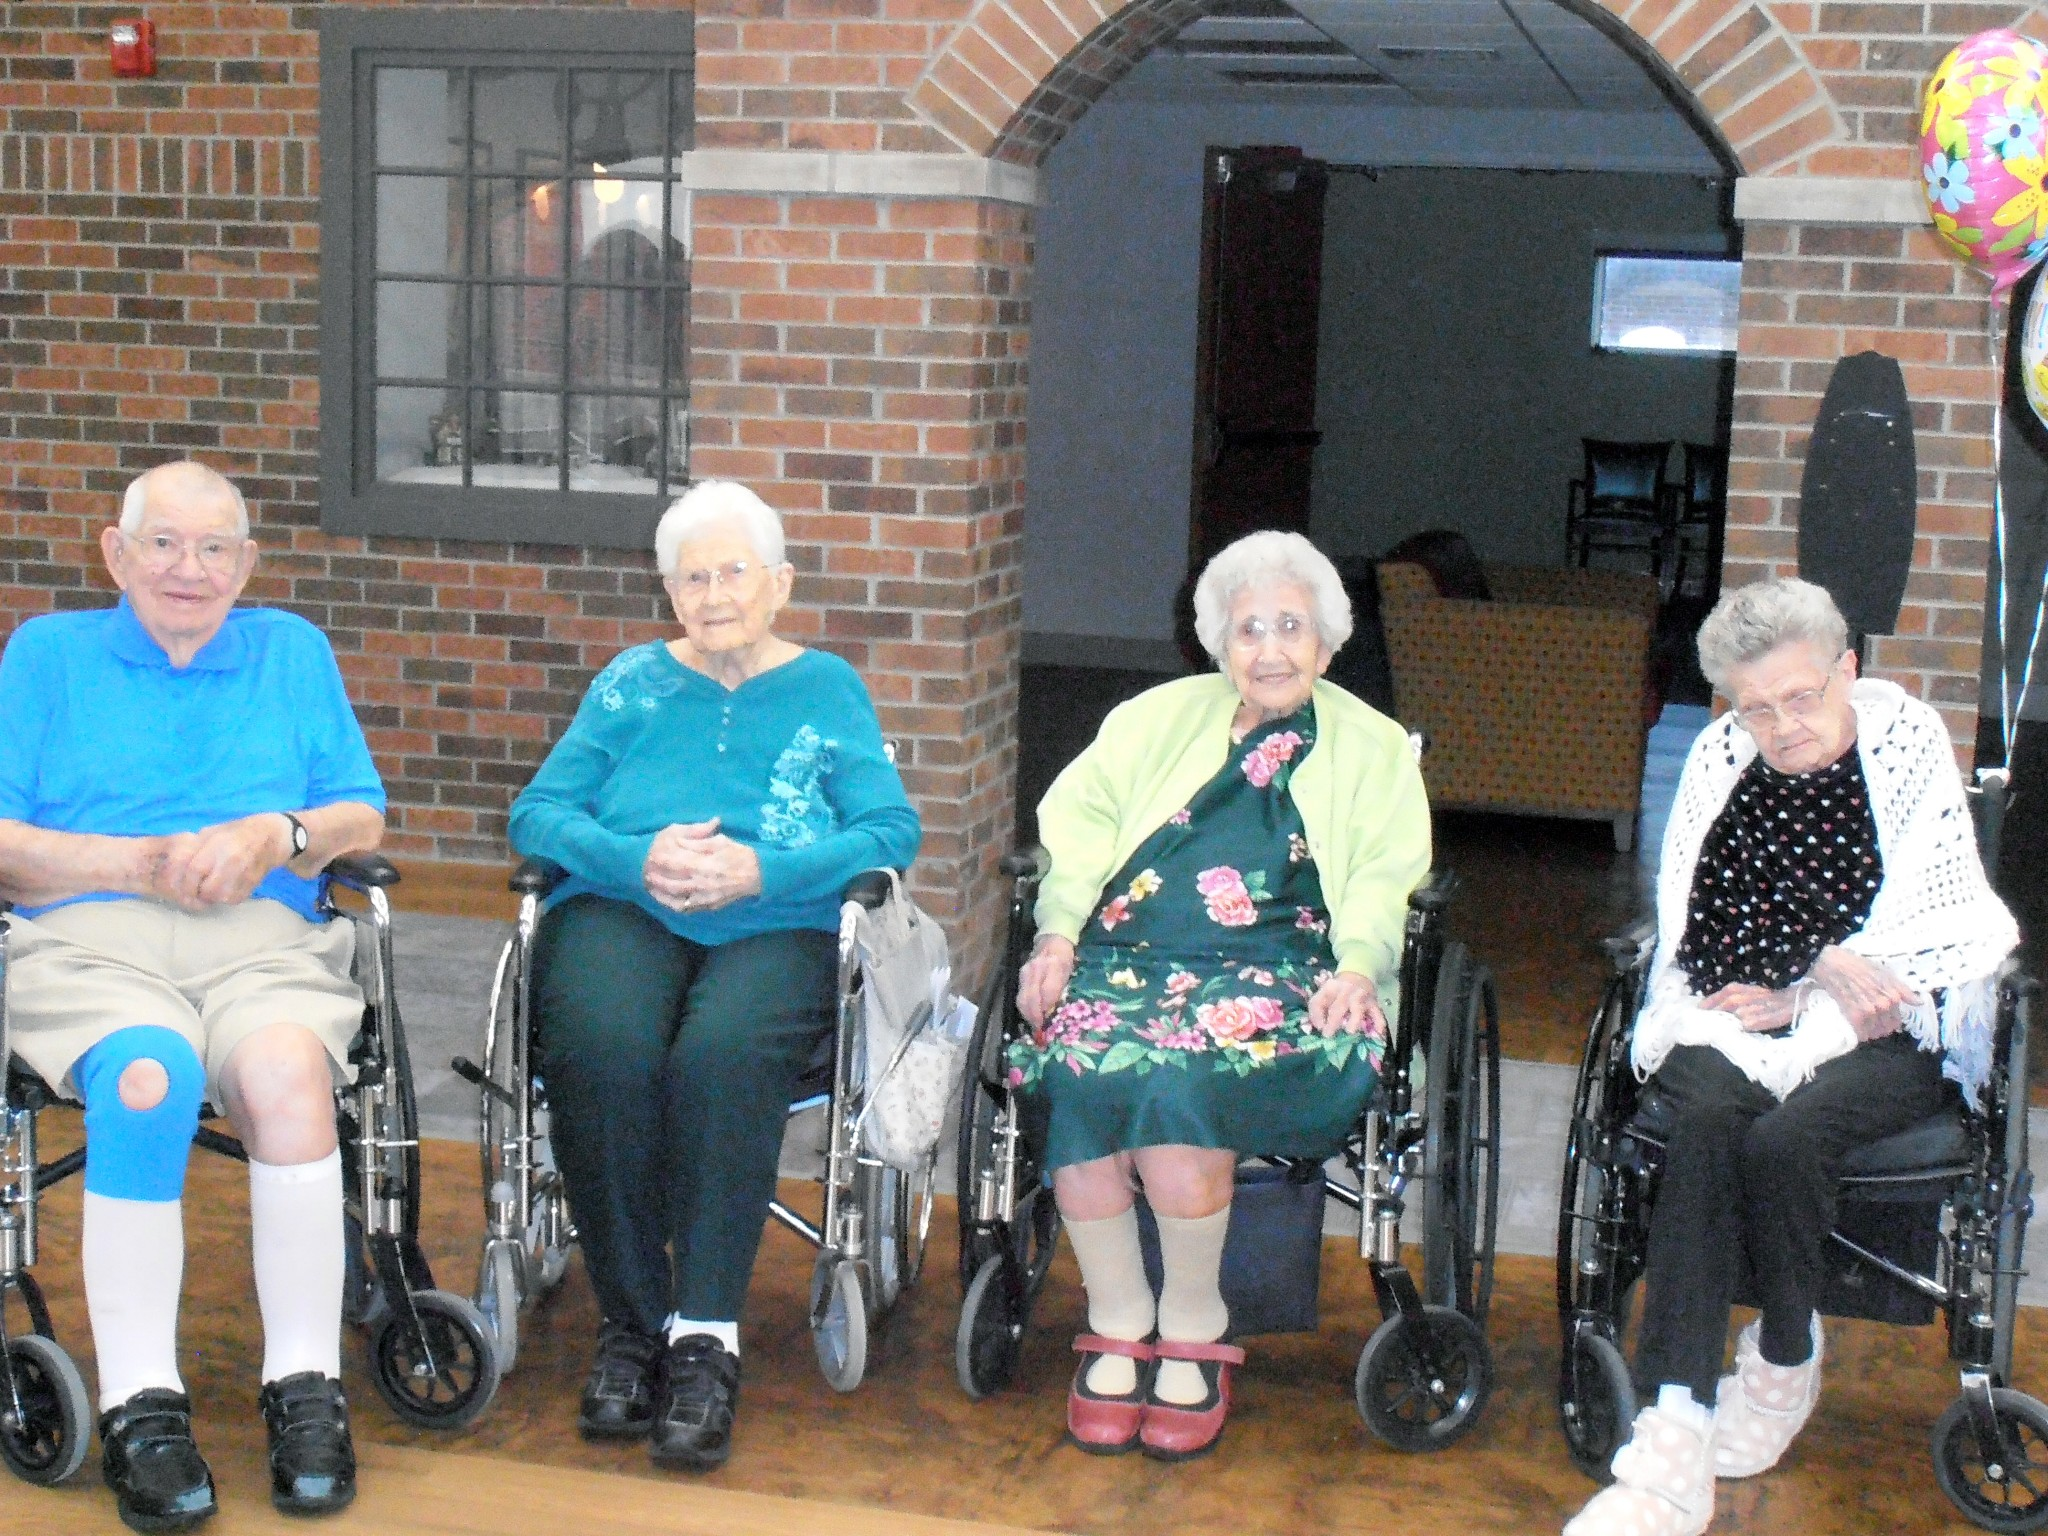 """Ottawa County Riverview Healthcare Campus in Oak Harbor, is proud to have four centenarians who call Riverview home. Pictured from left to right are Roland """"Joe"""" Josephson (101), Marguerite Gadjalski (102), Rose Burmeister (103) and Margaret Adler (100). (Submitted photo)"""